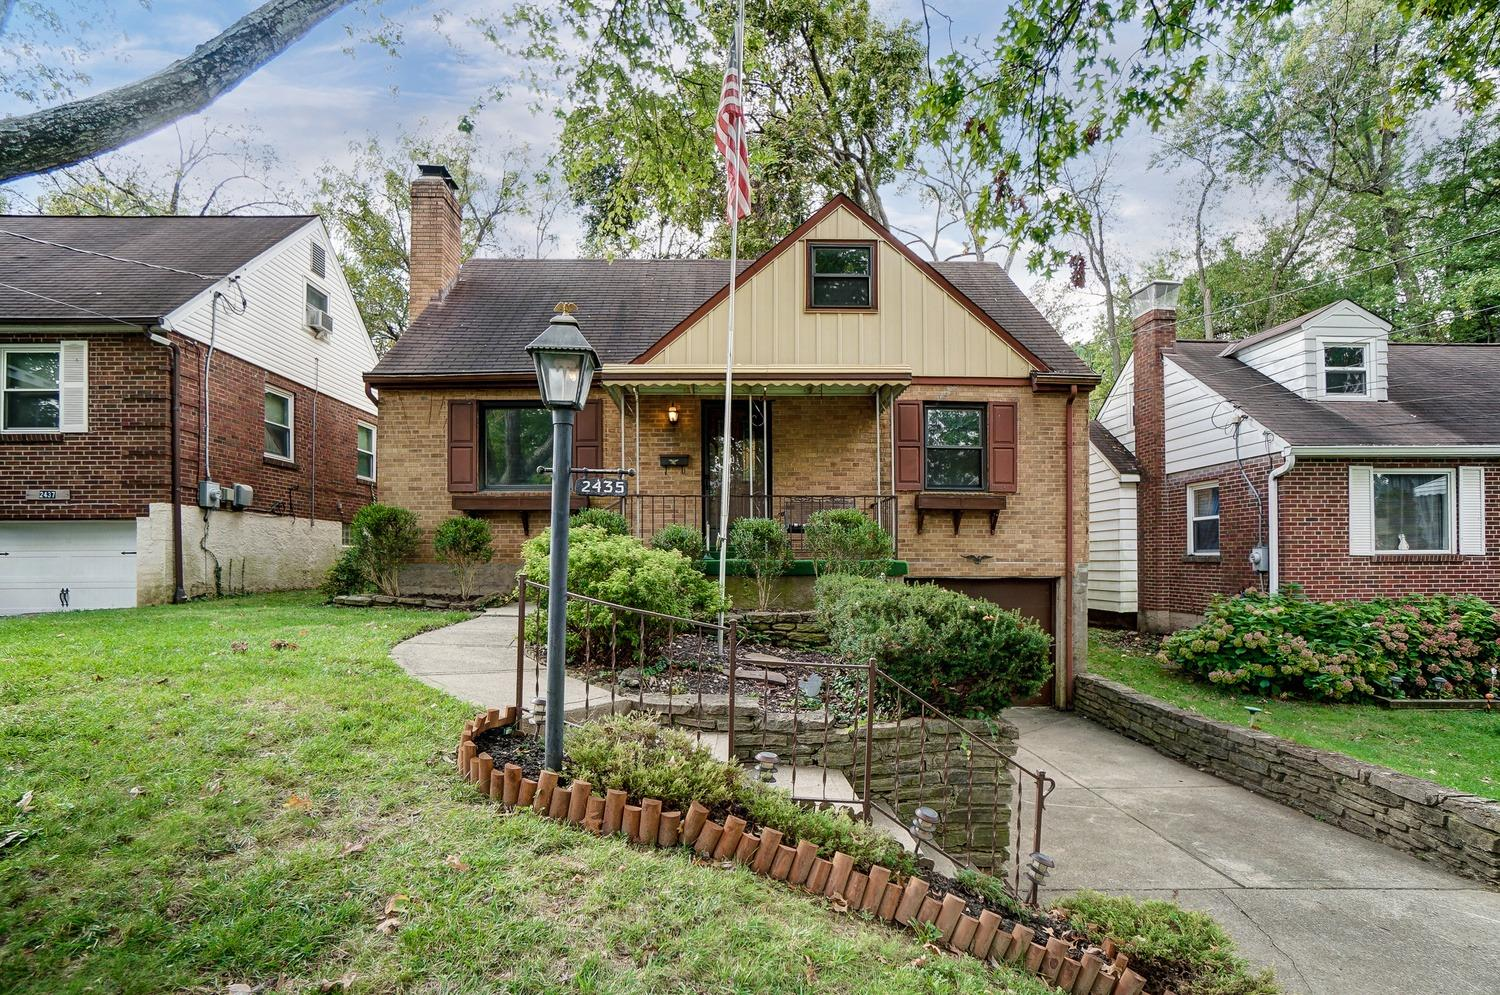 2435 Ardmore Avenue, Golf Manor, Ohio 45237, 3 Bedrooms Bedrooms, 6 Rooms Rooms,1 BathroomBathrooms,Single Family Residence,For Sale,Ardmore,1718816